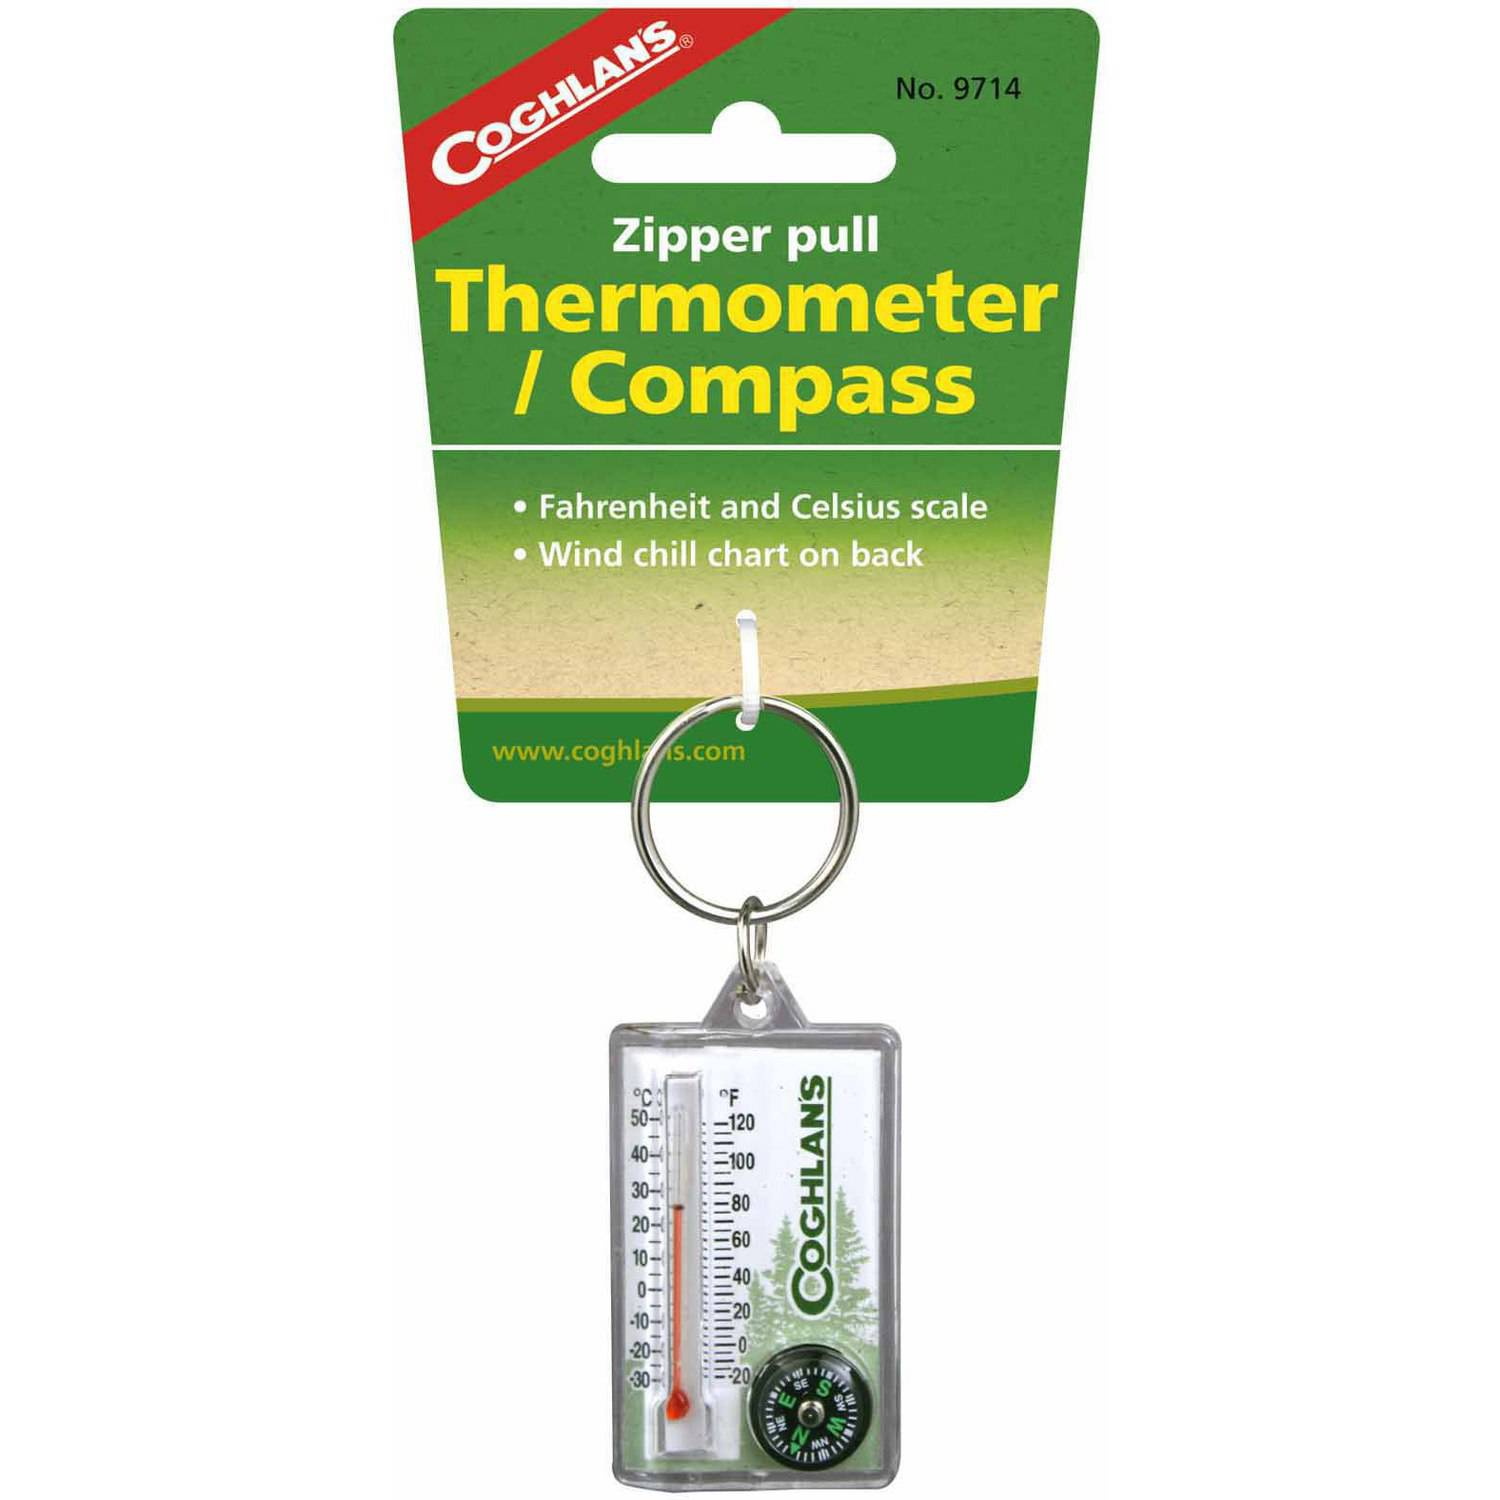 Coghlan's Zipper Pull Thermometer with Compass by Generic